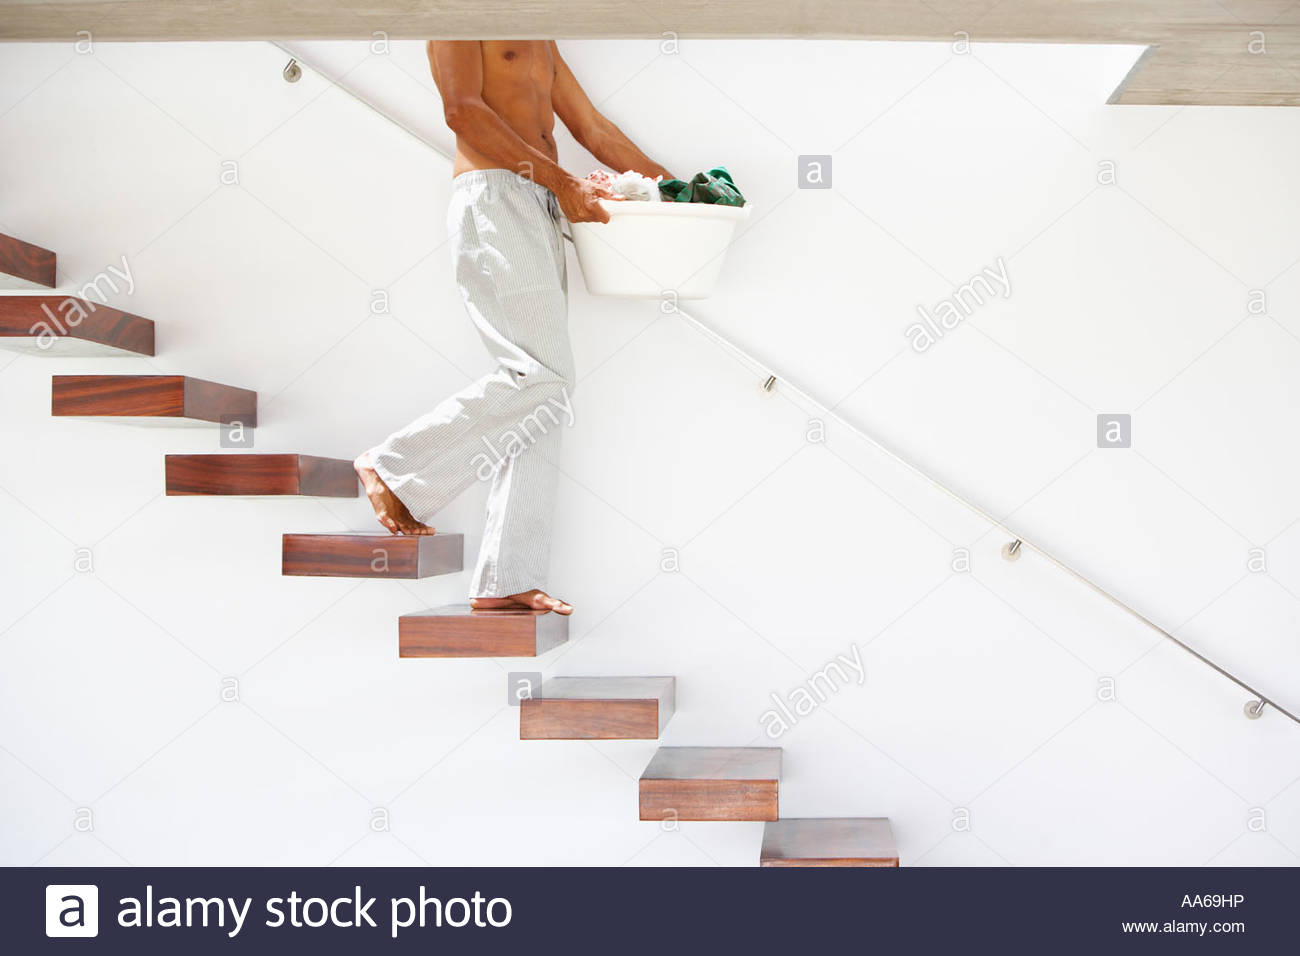 Man Walking Down Stairs With Laundry Basket